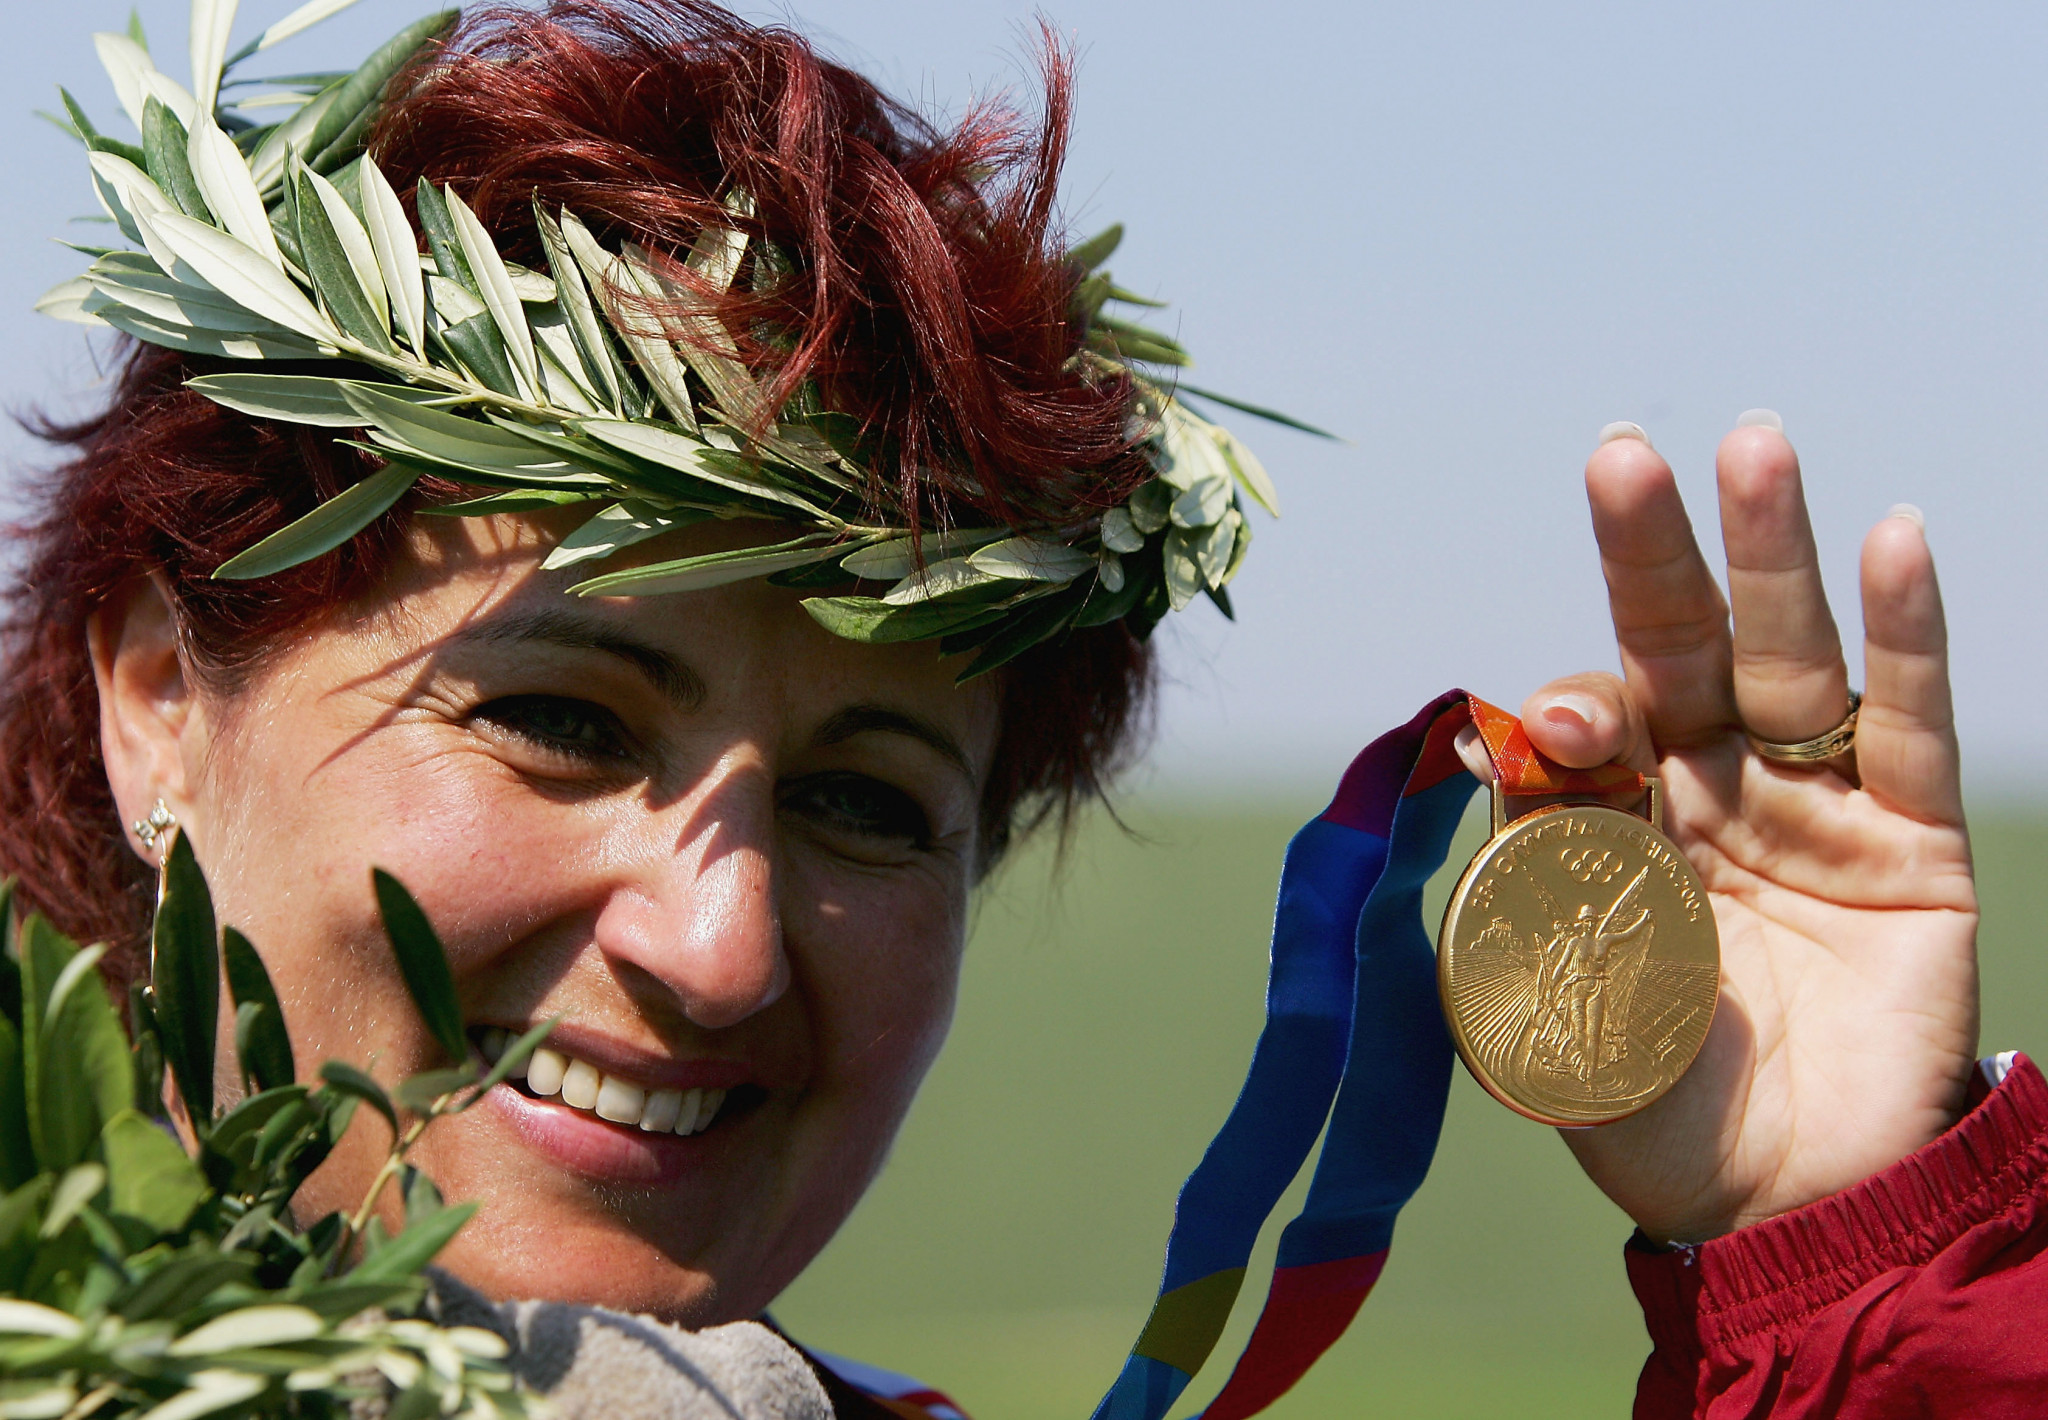 Diána Igaly won women's skeet gold at the Athens 2004 Olympic Games ©Getty Images